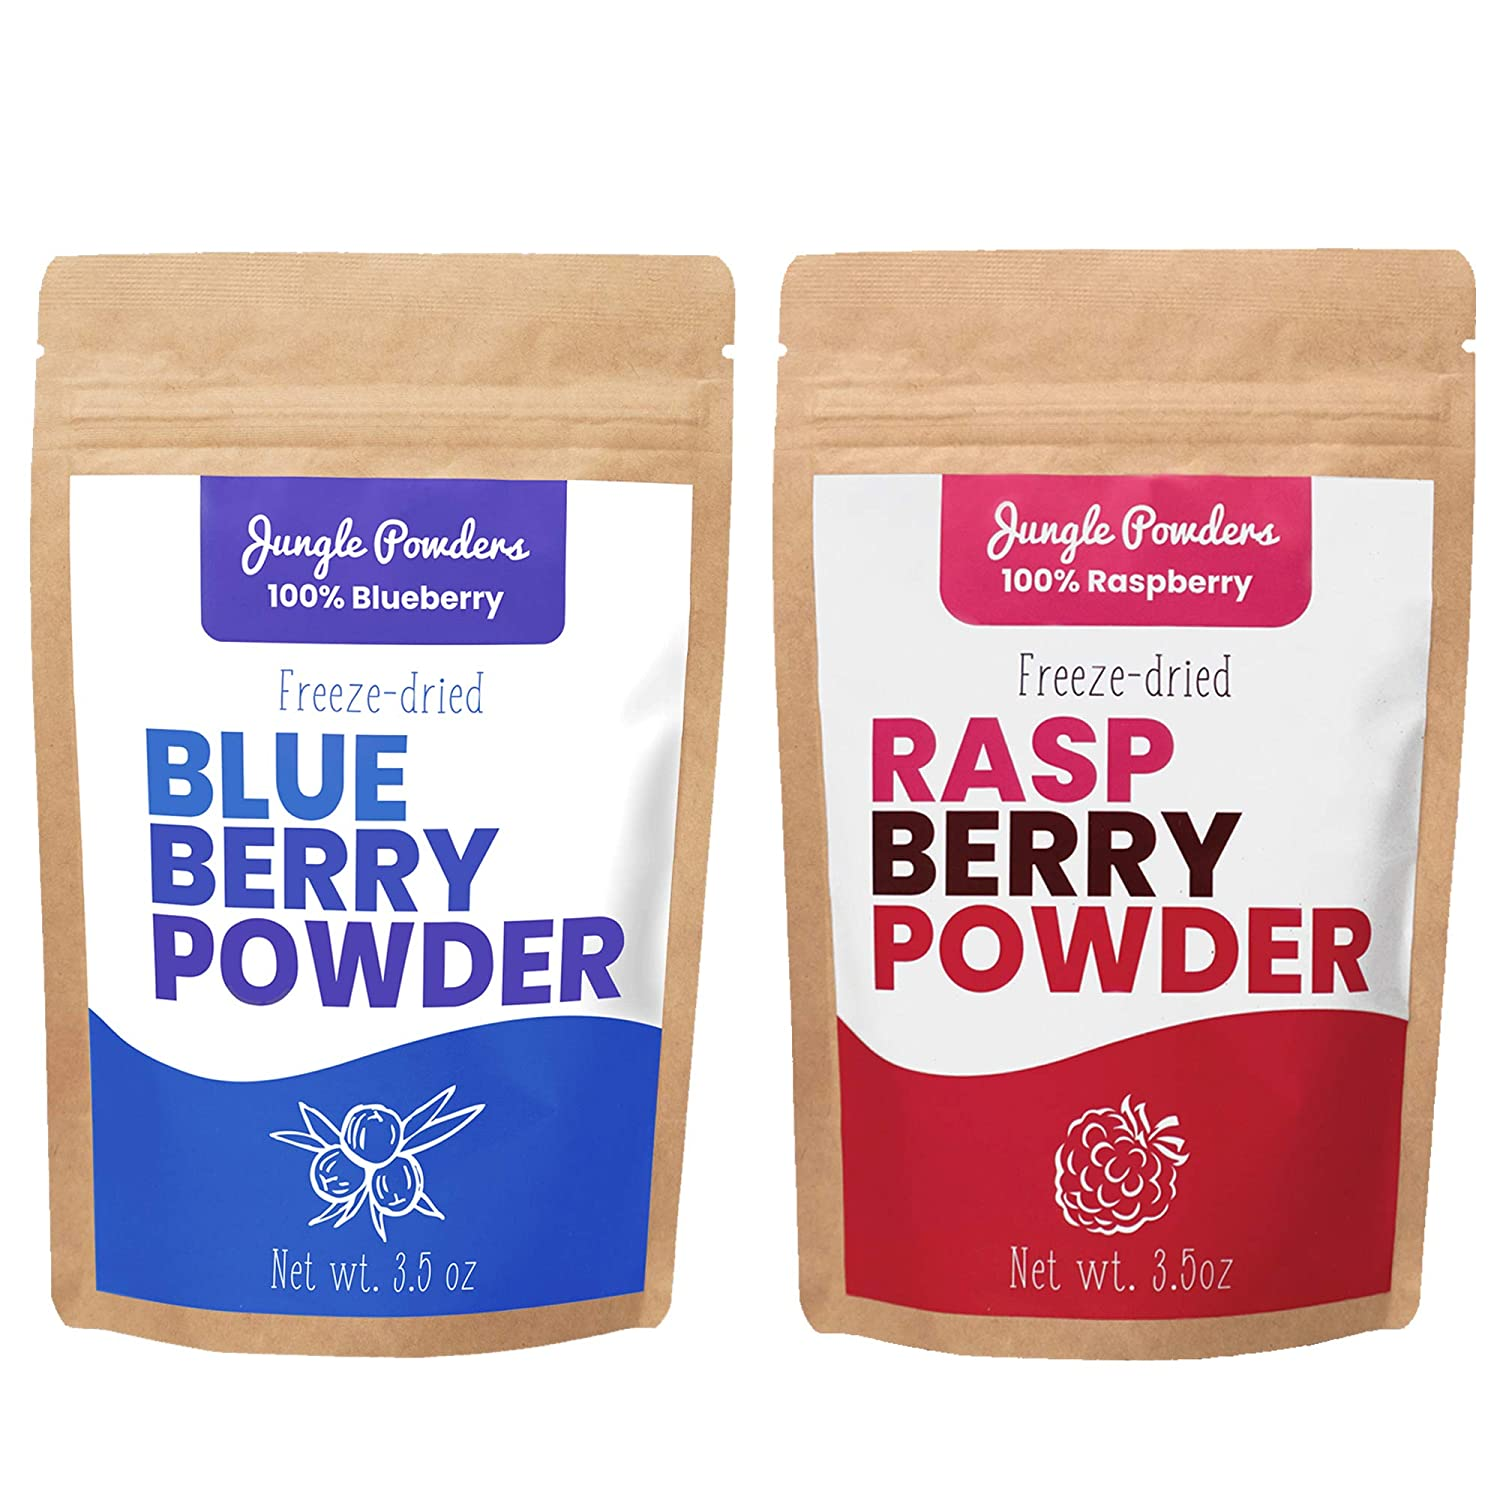 Jungle Powders Superfood Fruit Powder Bundle | Raspberry & Blueberry 100% Freeze Dried Fruit Powder Vegan Friendly Raspberry Extract | Natural Food Coloring Unsweetened Blueberry Superfood Powder